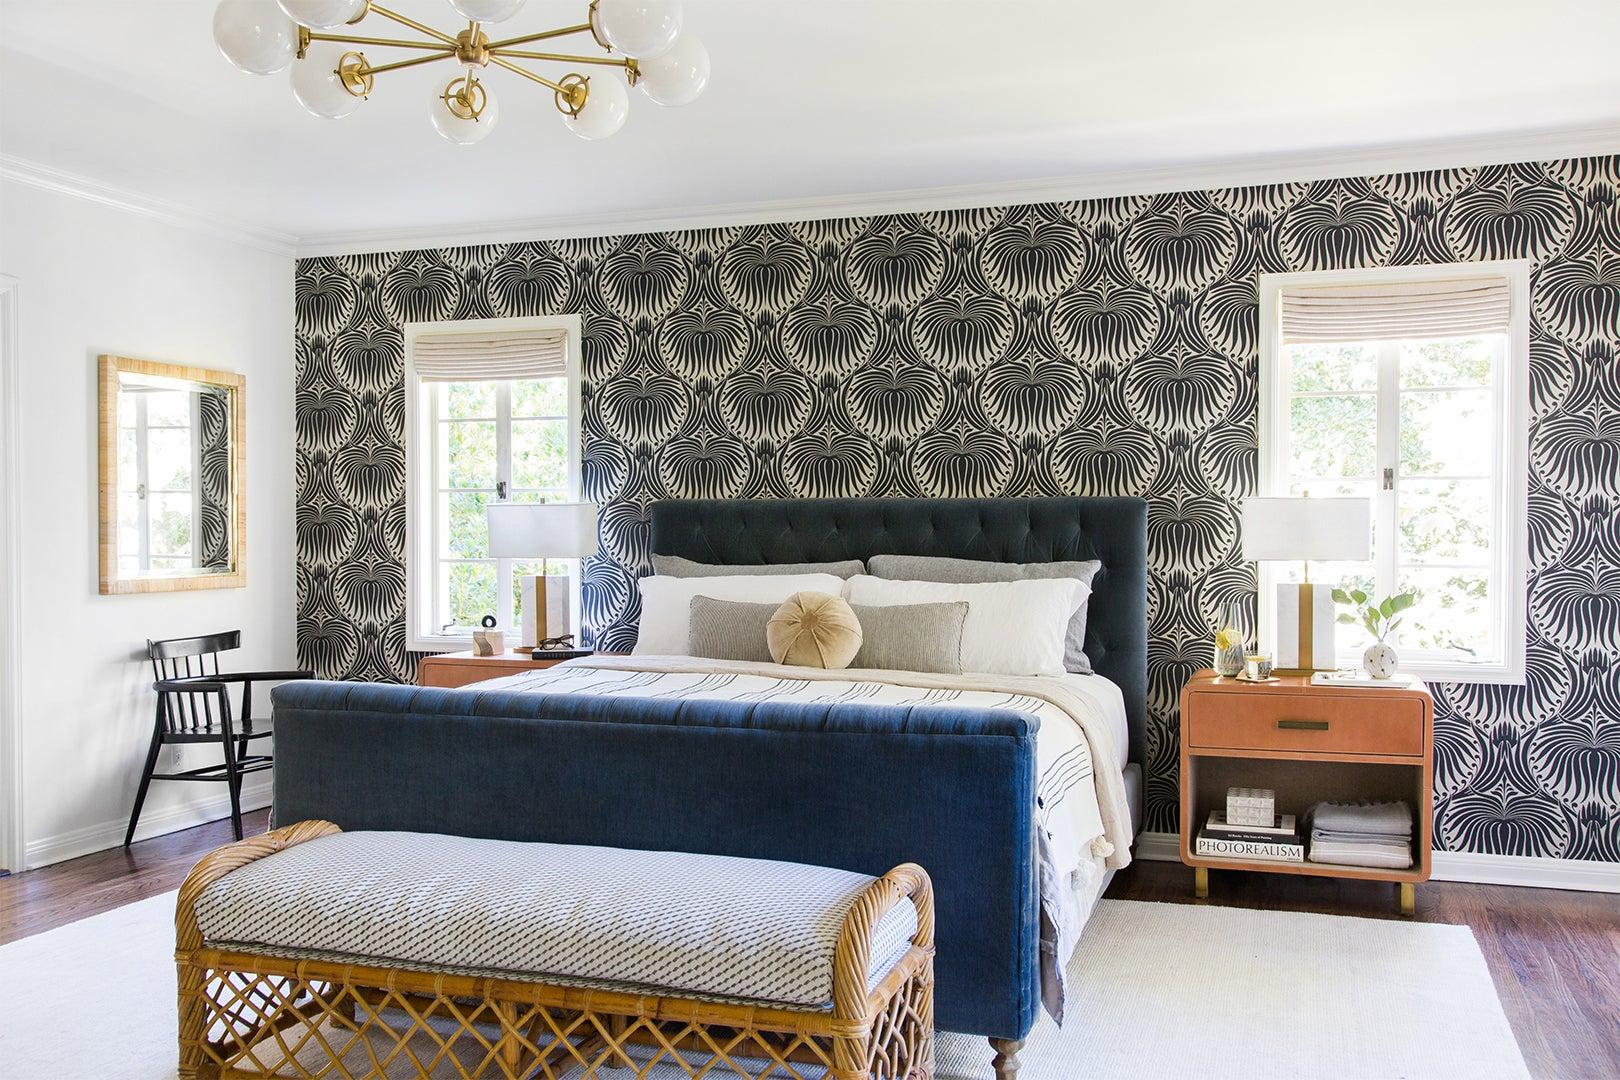 bedroom with black and white wallpaper and blue upholstered bed frame